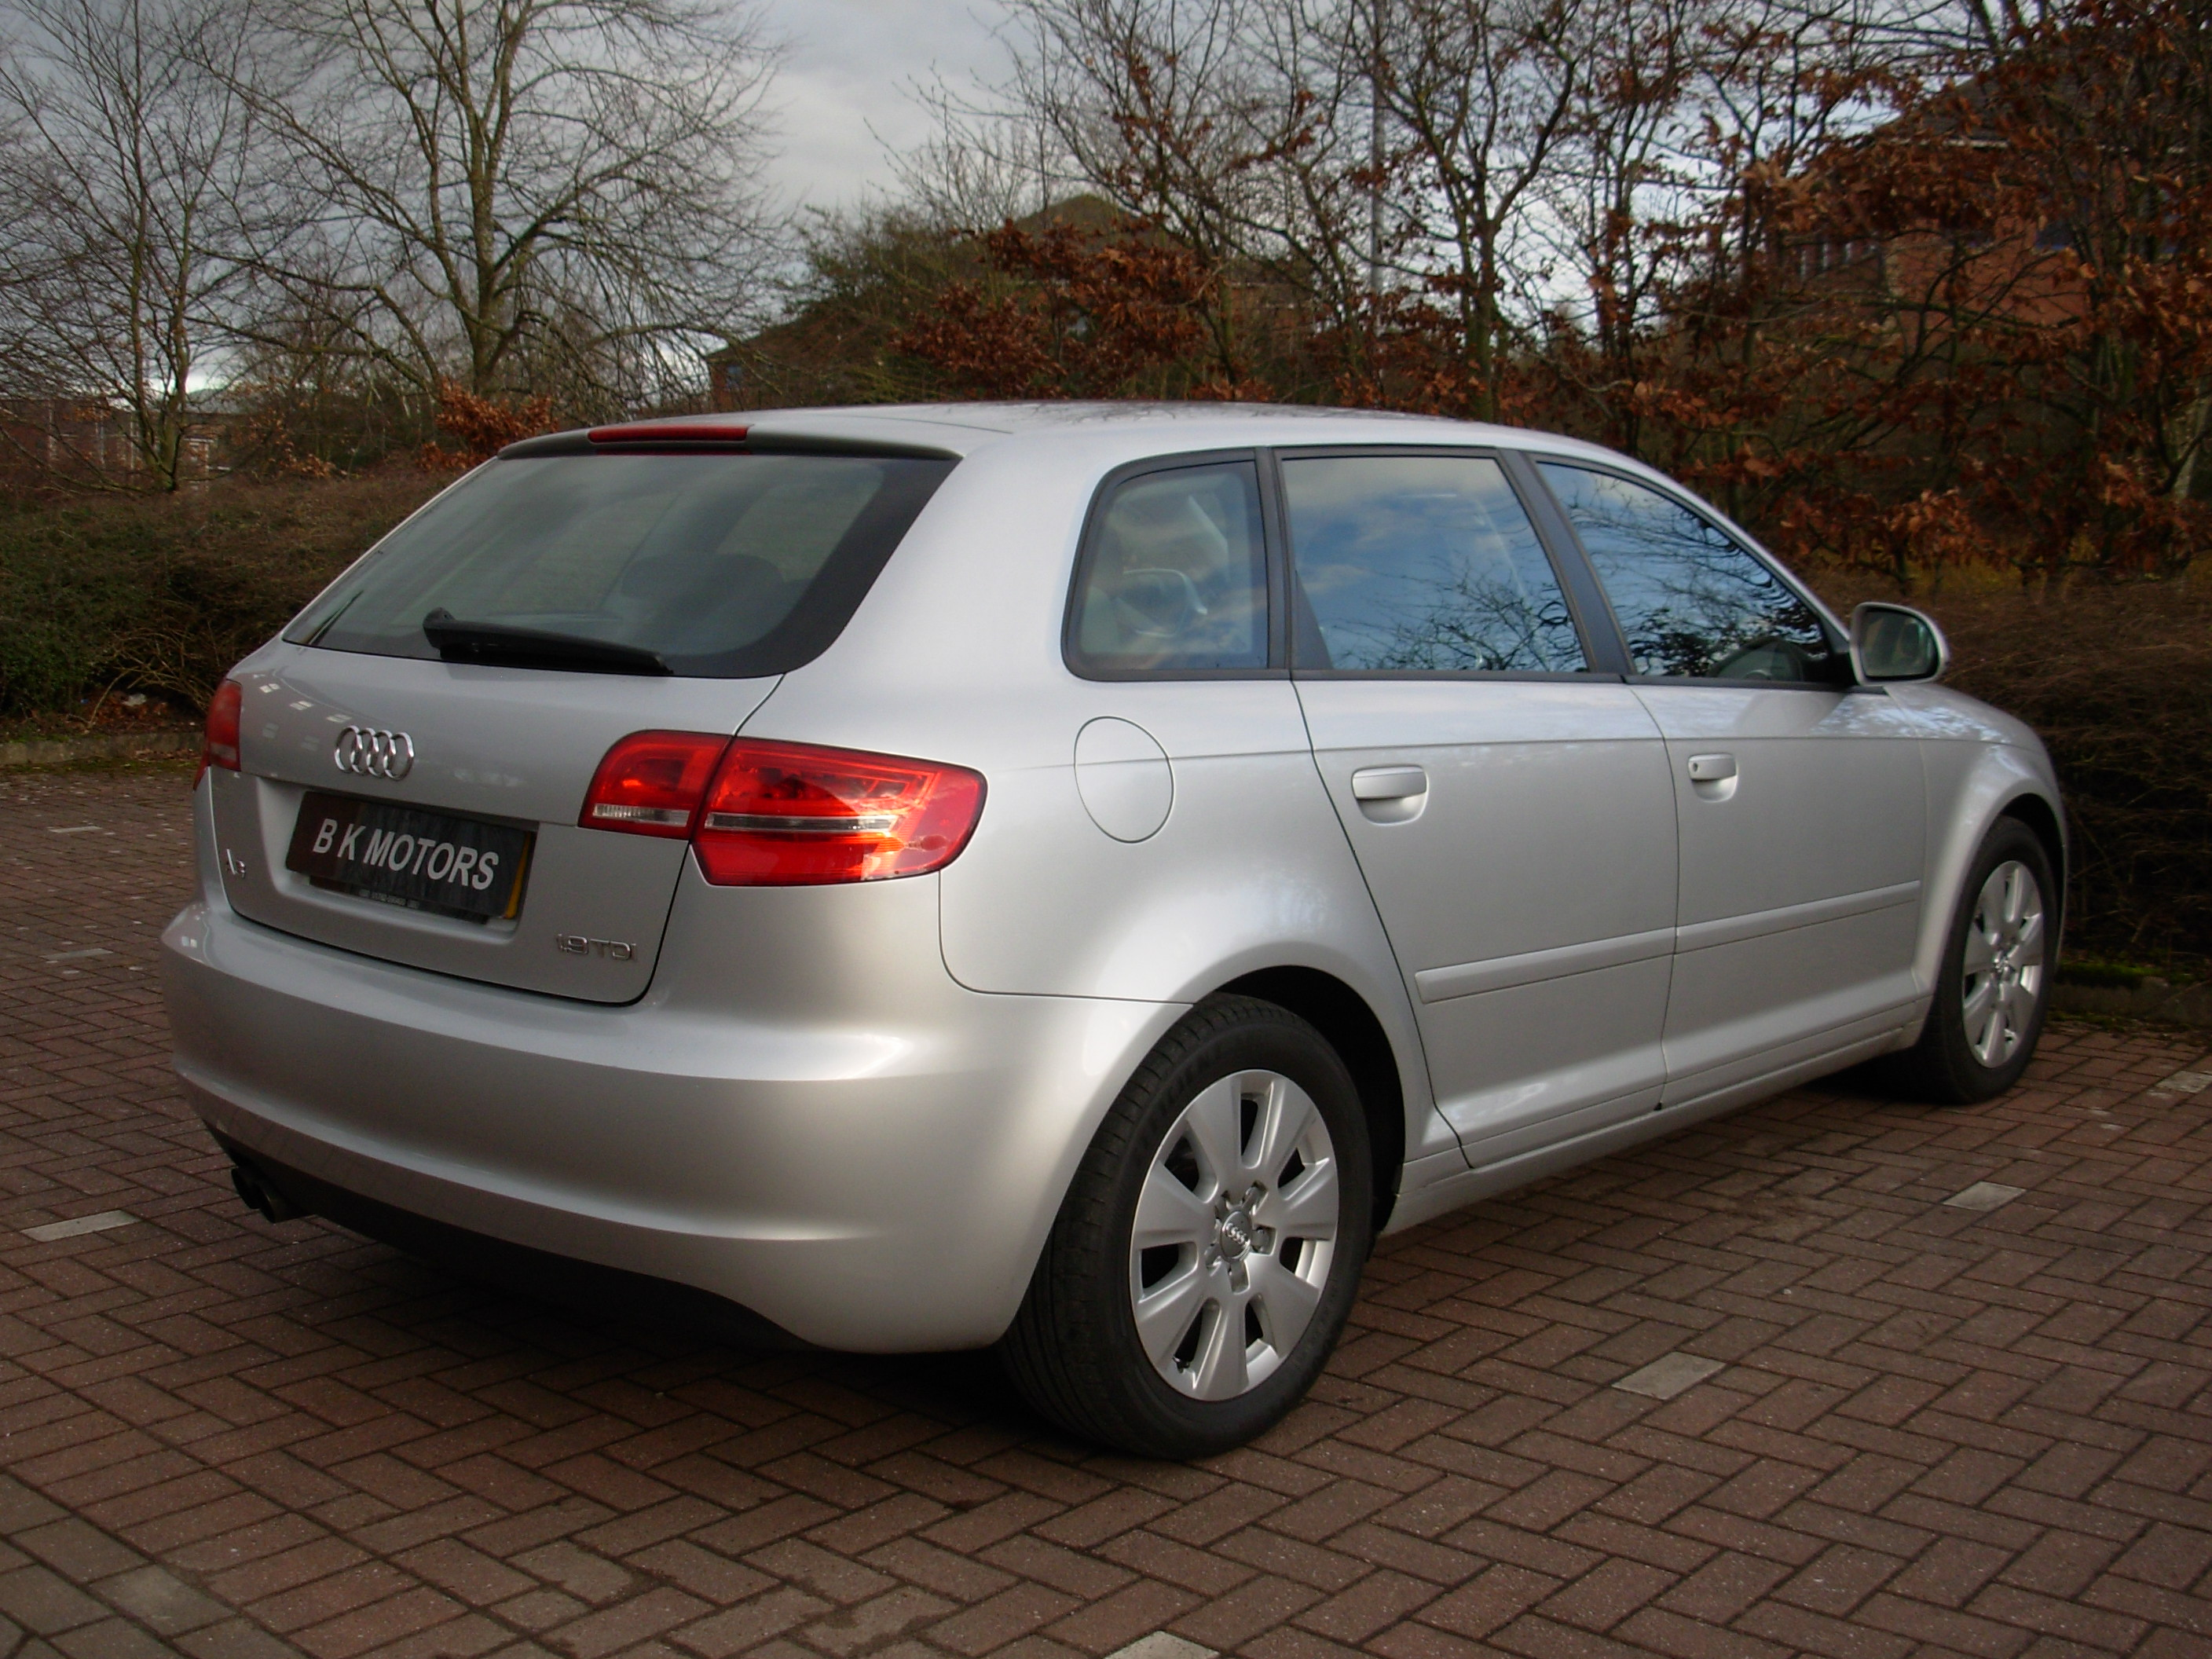 used audi a3 1 9 tdi se 105 fsh for sale in stafford bk motors. Black Bedroom Furniture Sets. Home Design Ideas